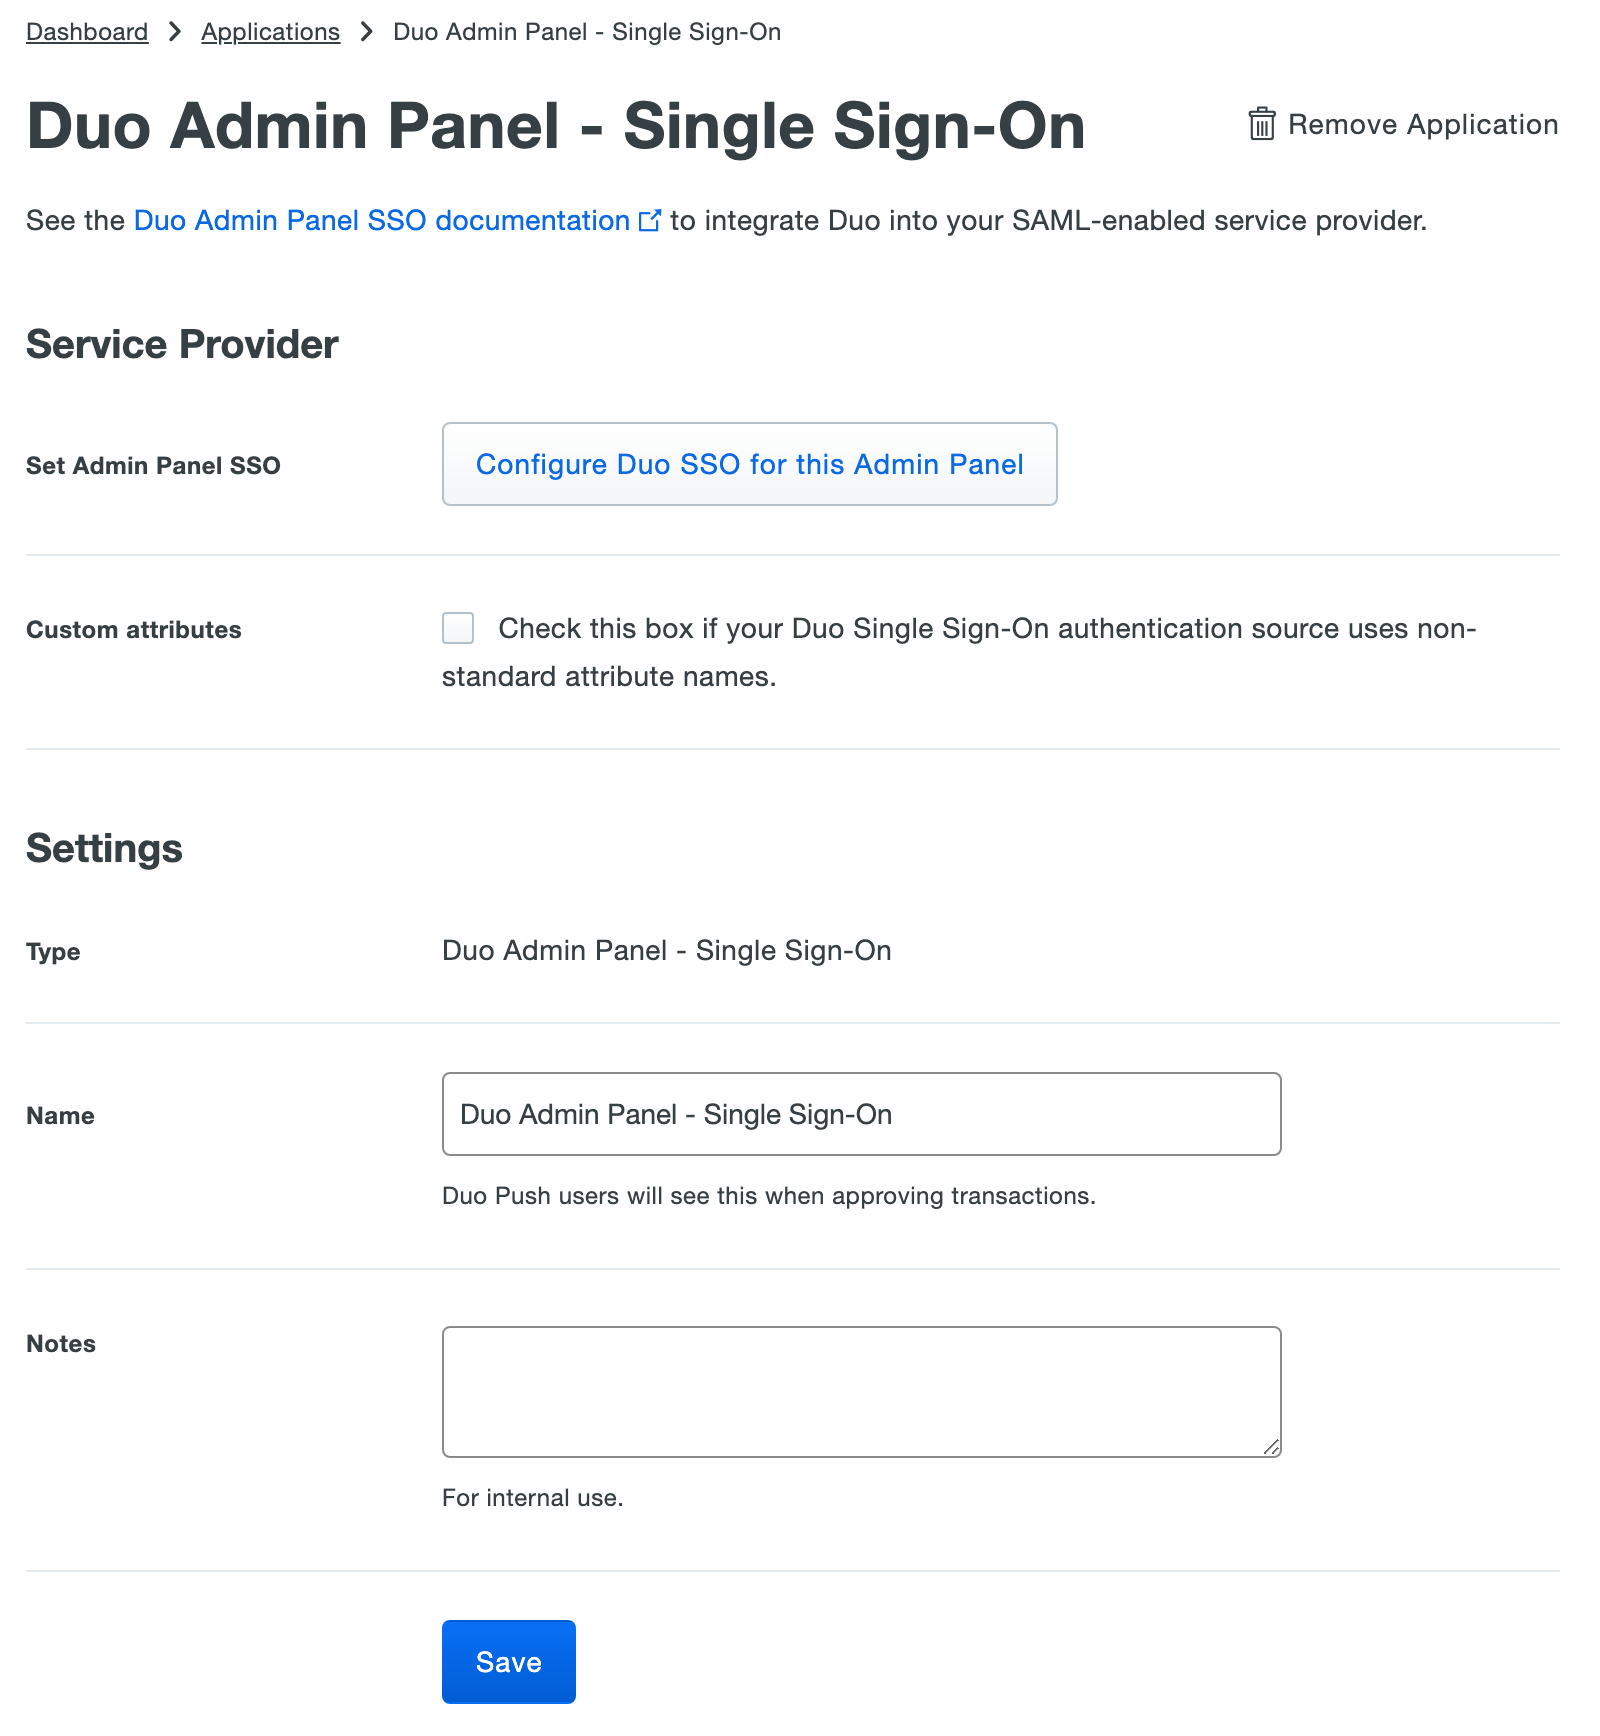 Duo Admin Panel SSO Application Settings